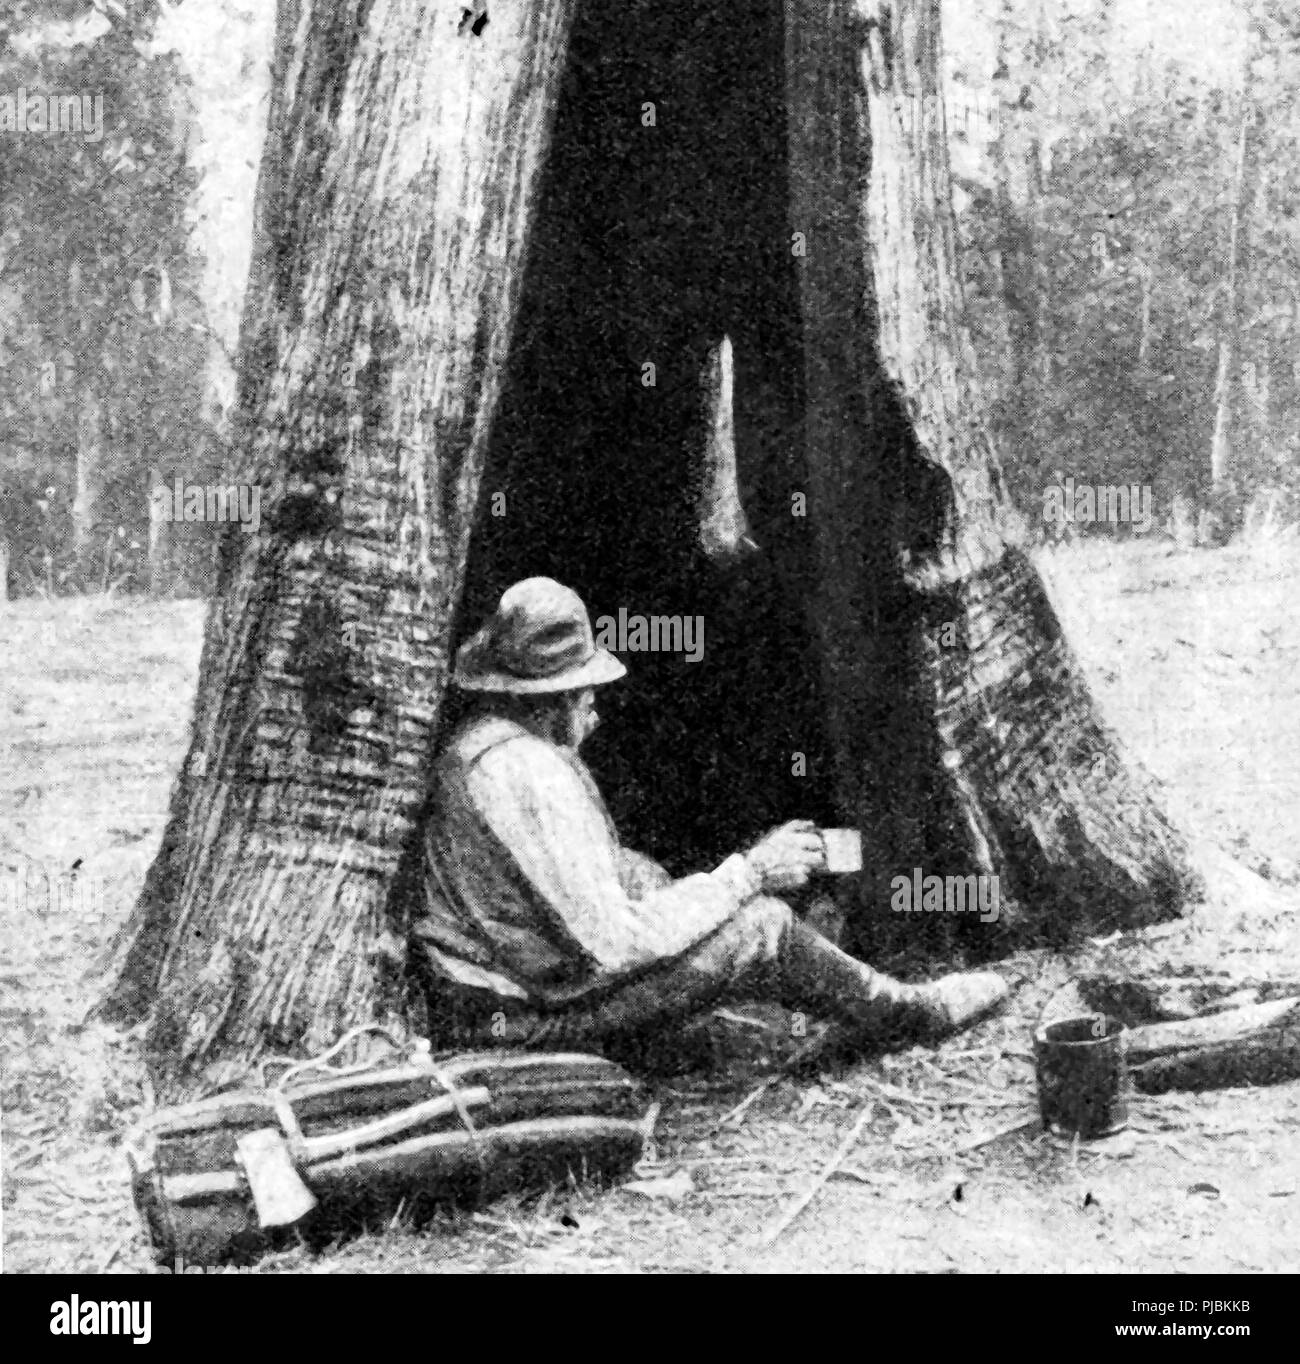 A 1920 image of an Australian settler (swag-man or gold miner ) living in a makeshift hut made from a hollow tree trunk Stock Photo